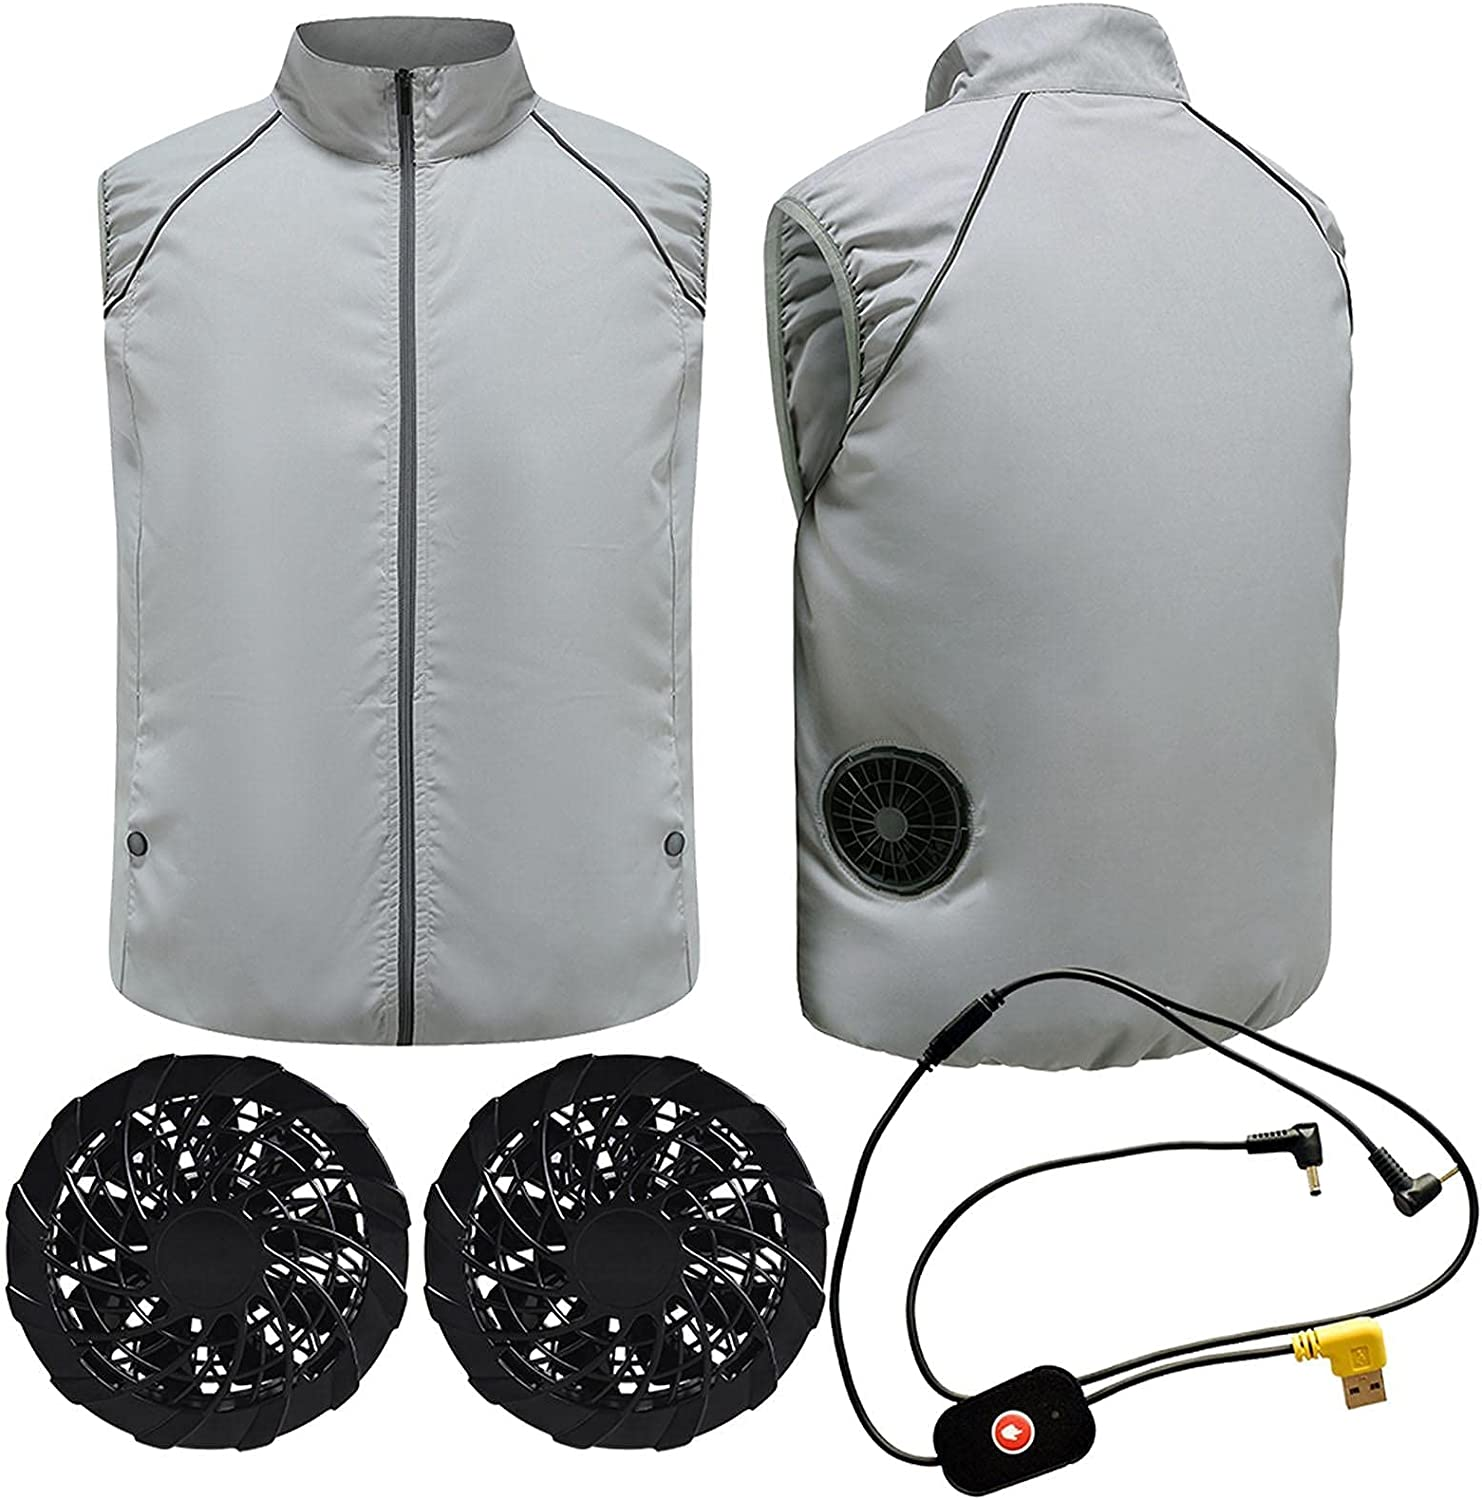 ZHANGSHOP New sales Cooling store Fan Vest Conditioned Clothes Evaporative Cool